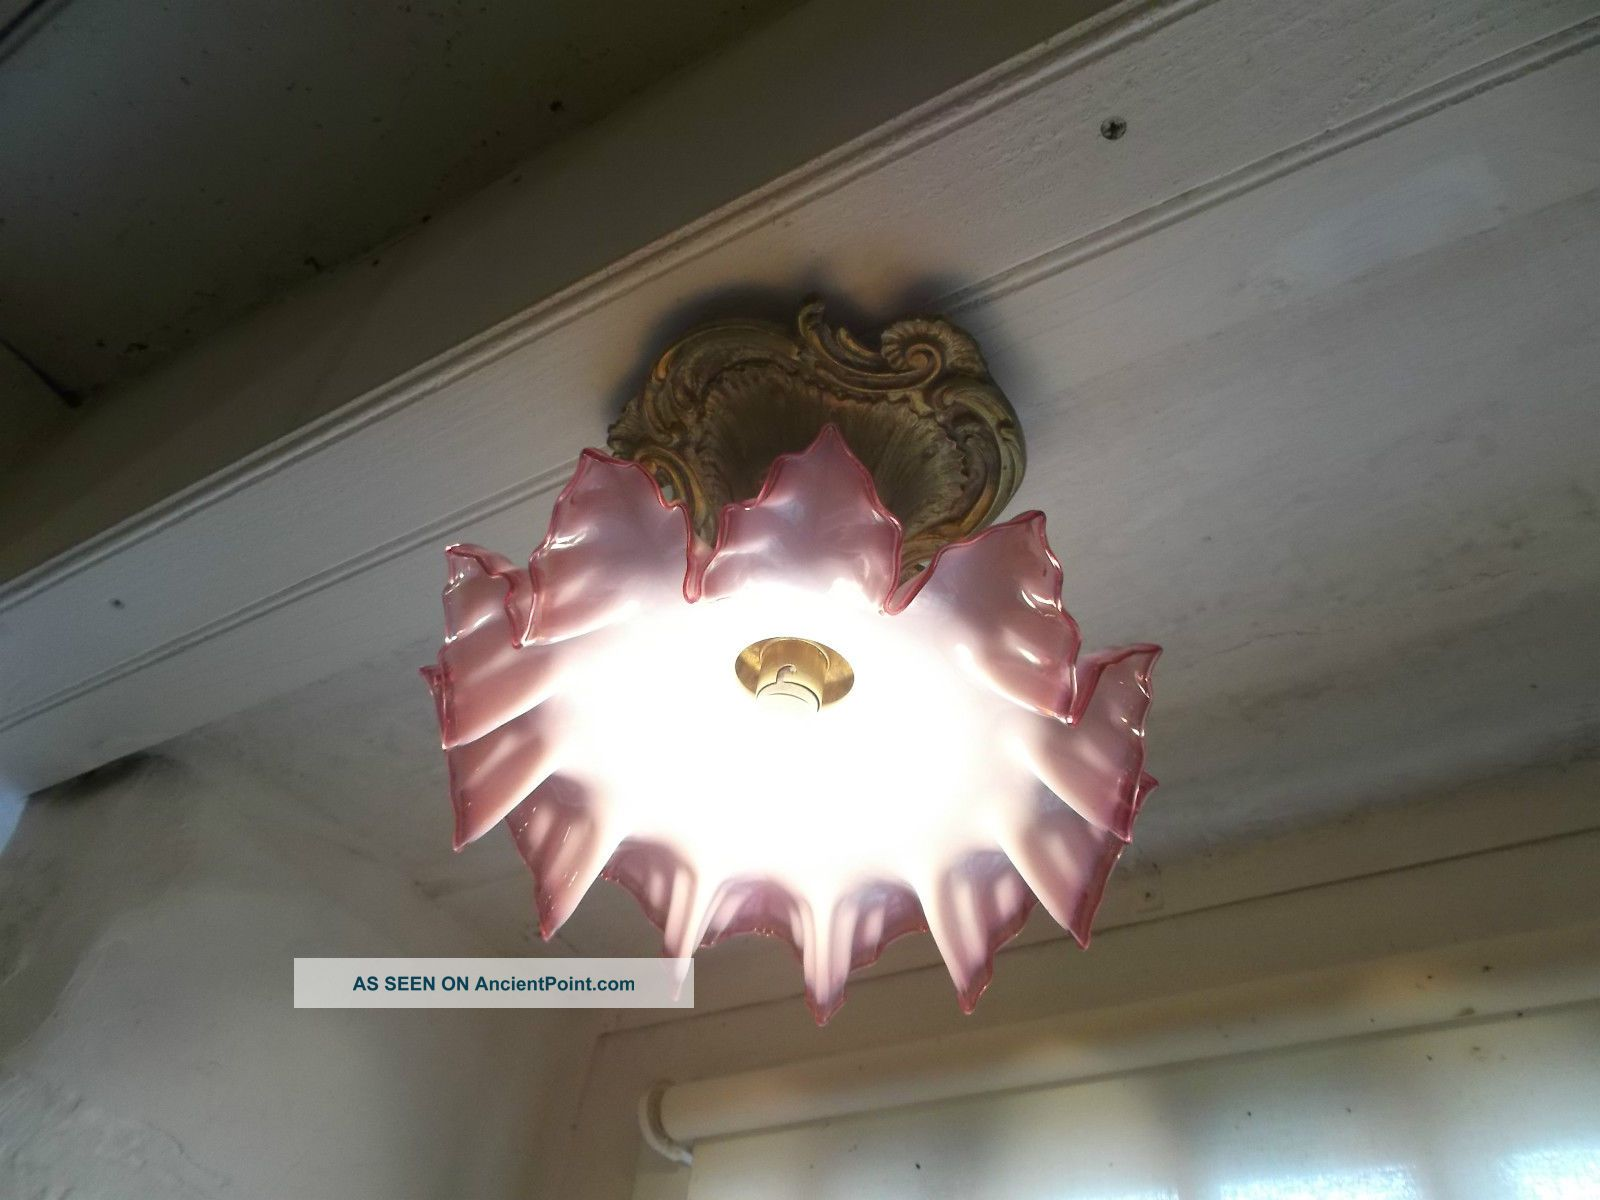 French Antique Ceiling Light Frosted Glass Shade Red Trim With Ornate Bronze Chandeliers, Fixtures, Sconces photo